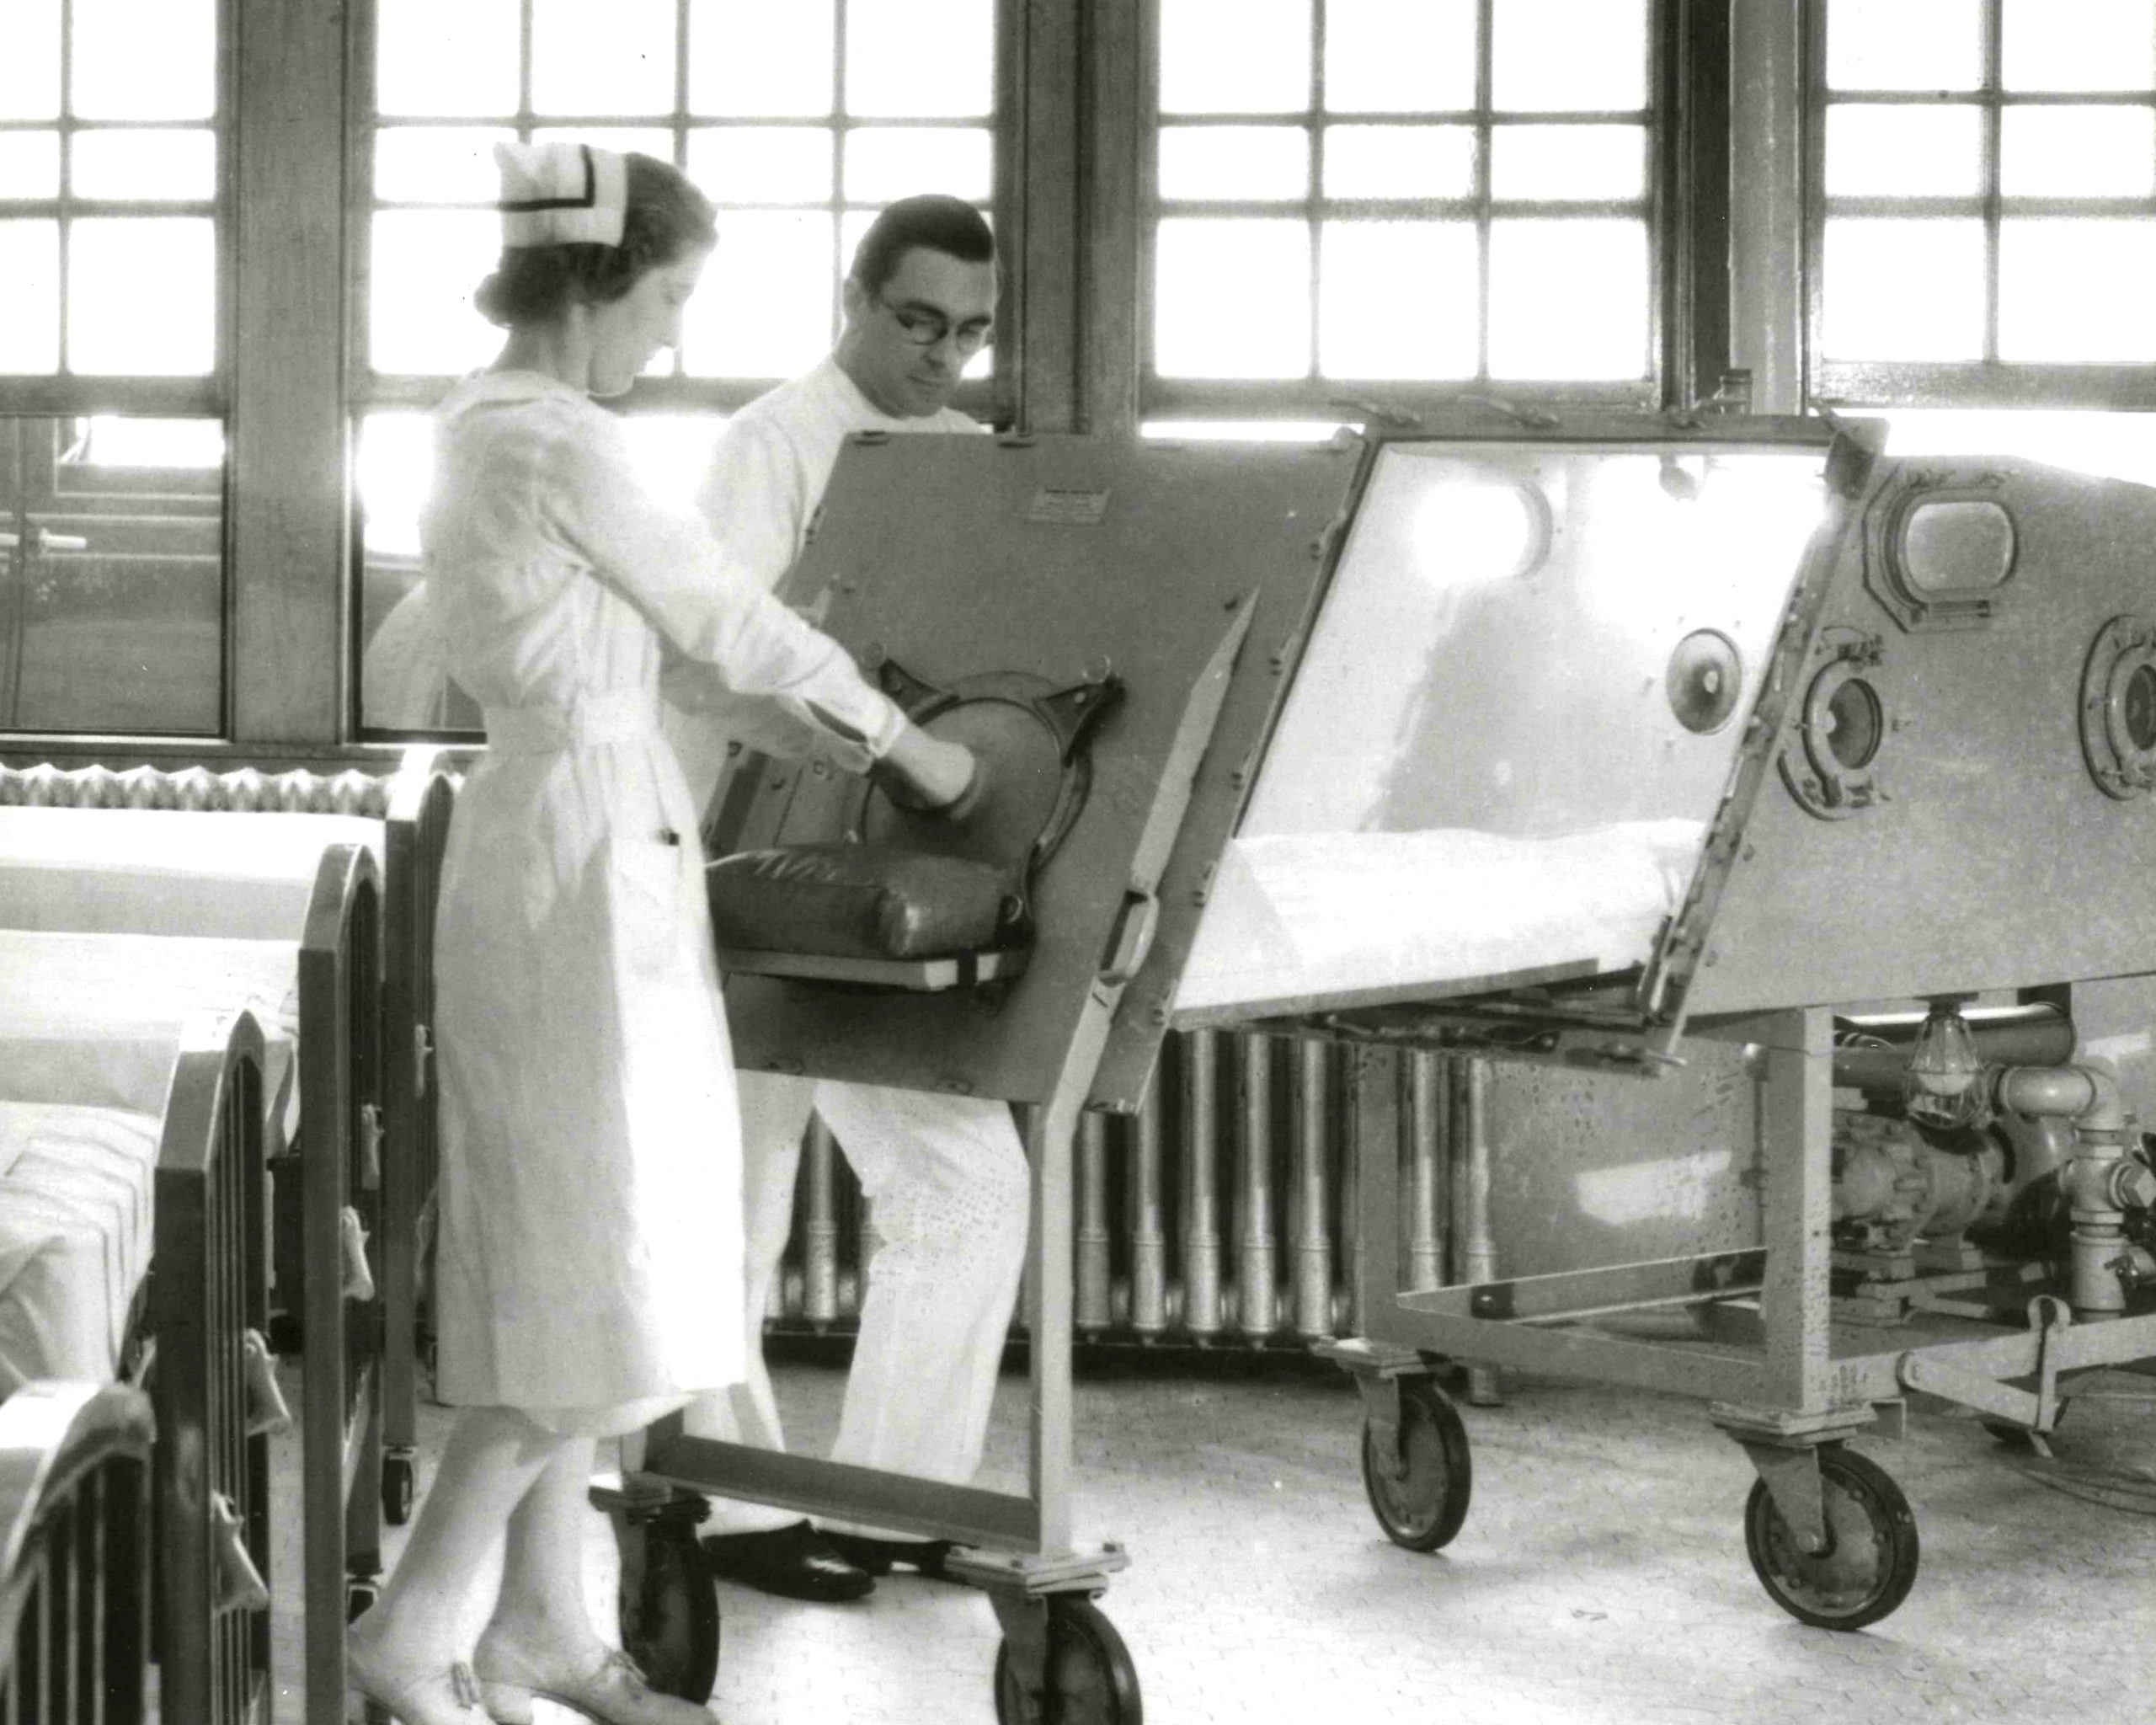 iron lung in 1931